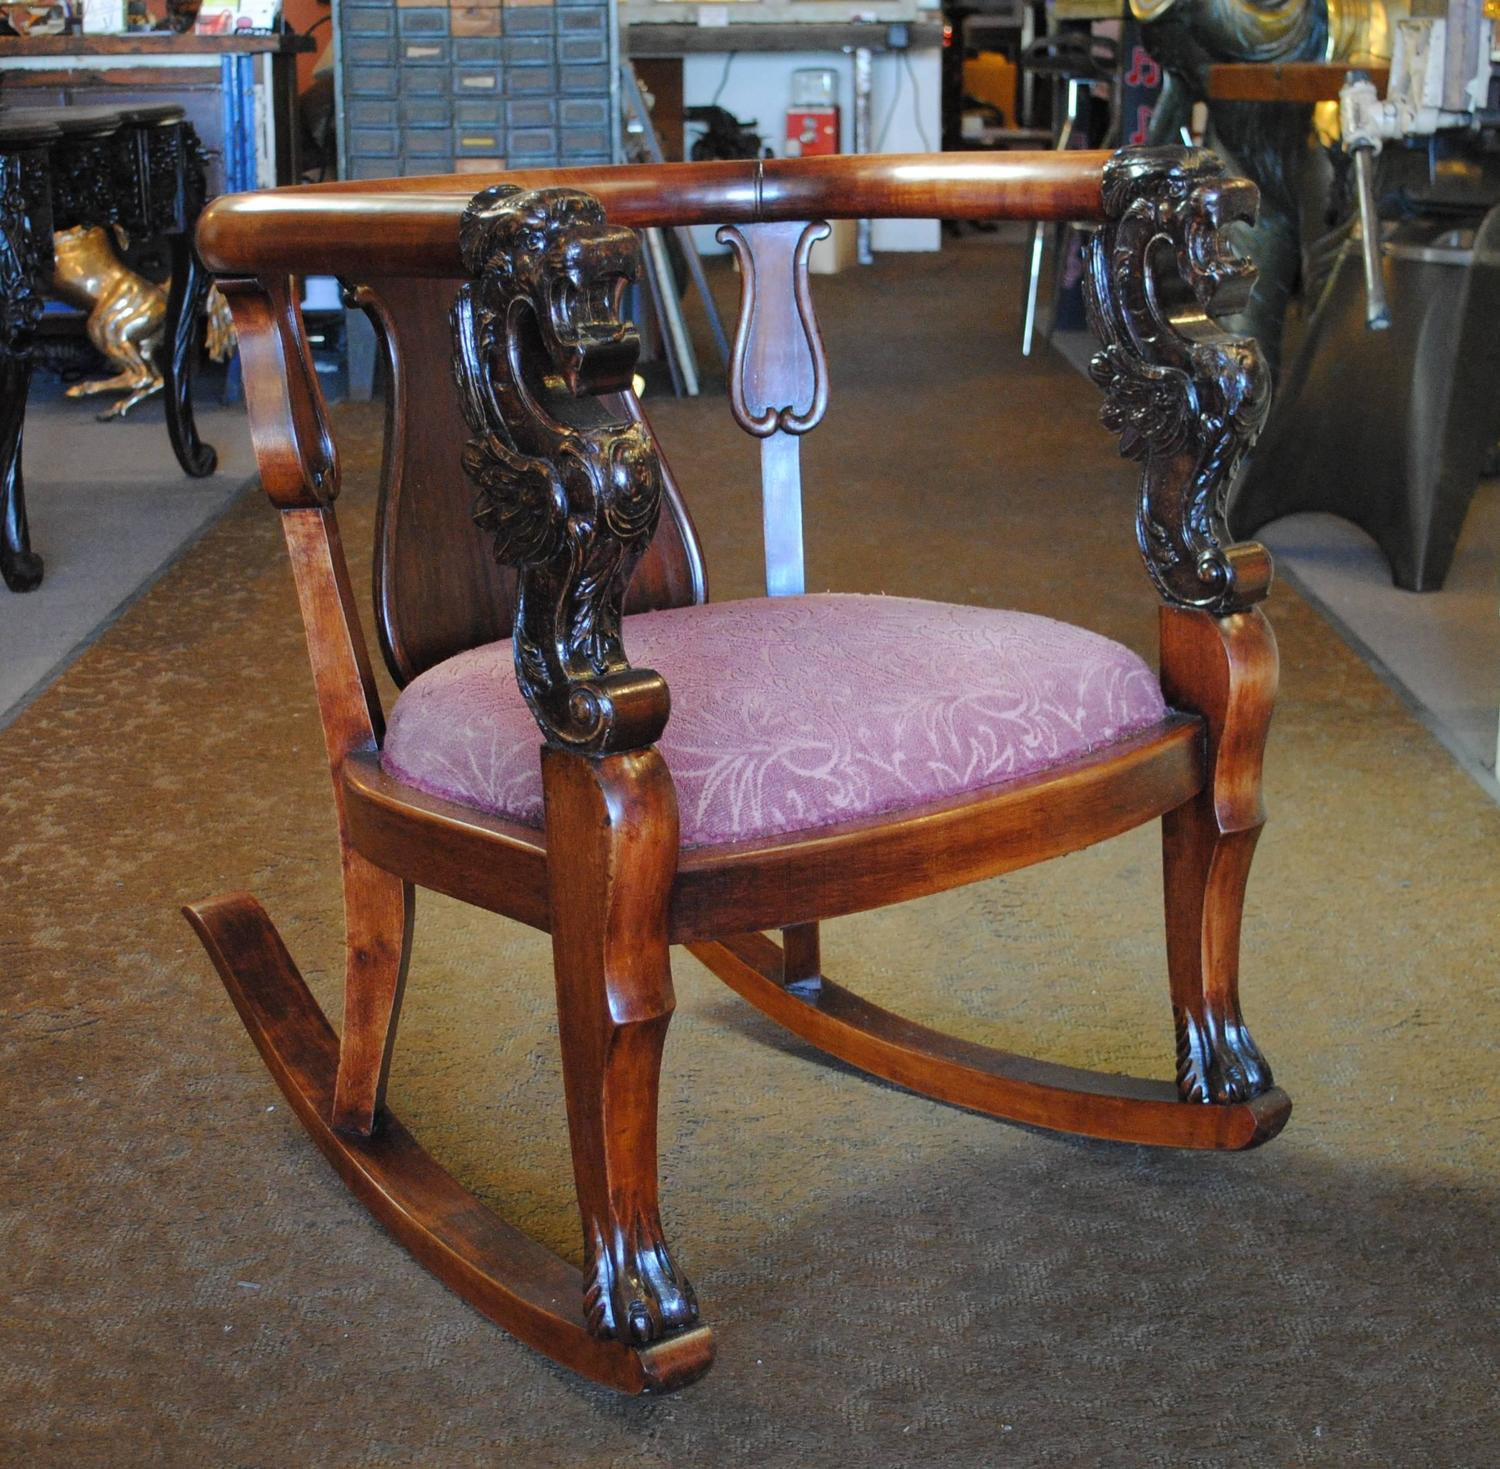 Antique Wood Rocking Chair Carved Griffin Lion Dragon For Sale at ...